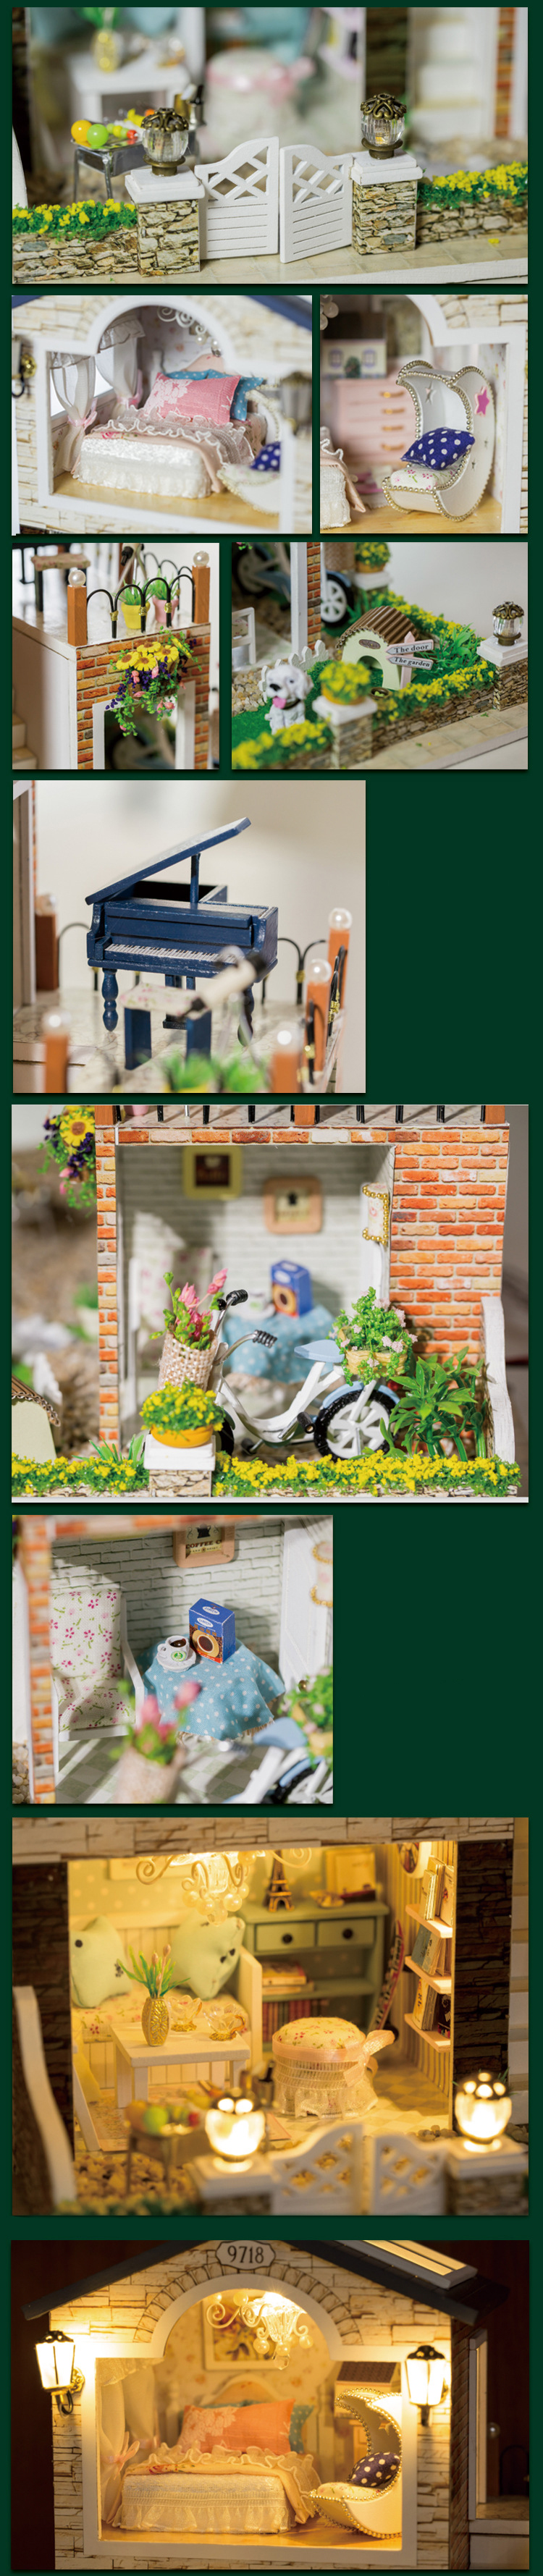 Cutebee Ireland Romantic Country DIY DollHouse